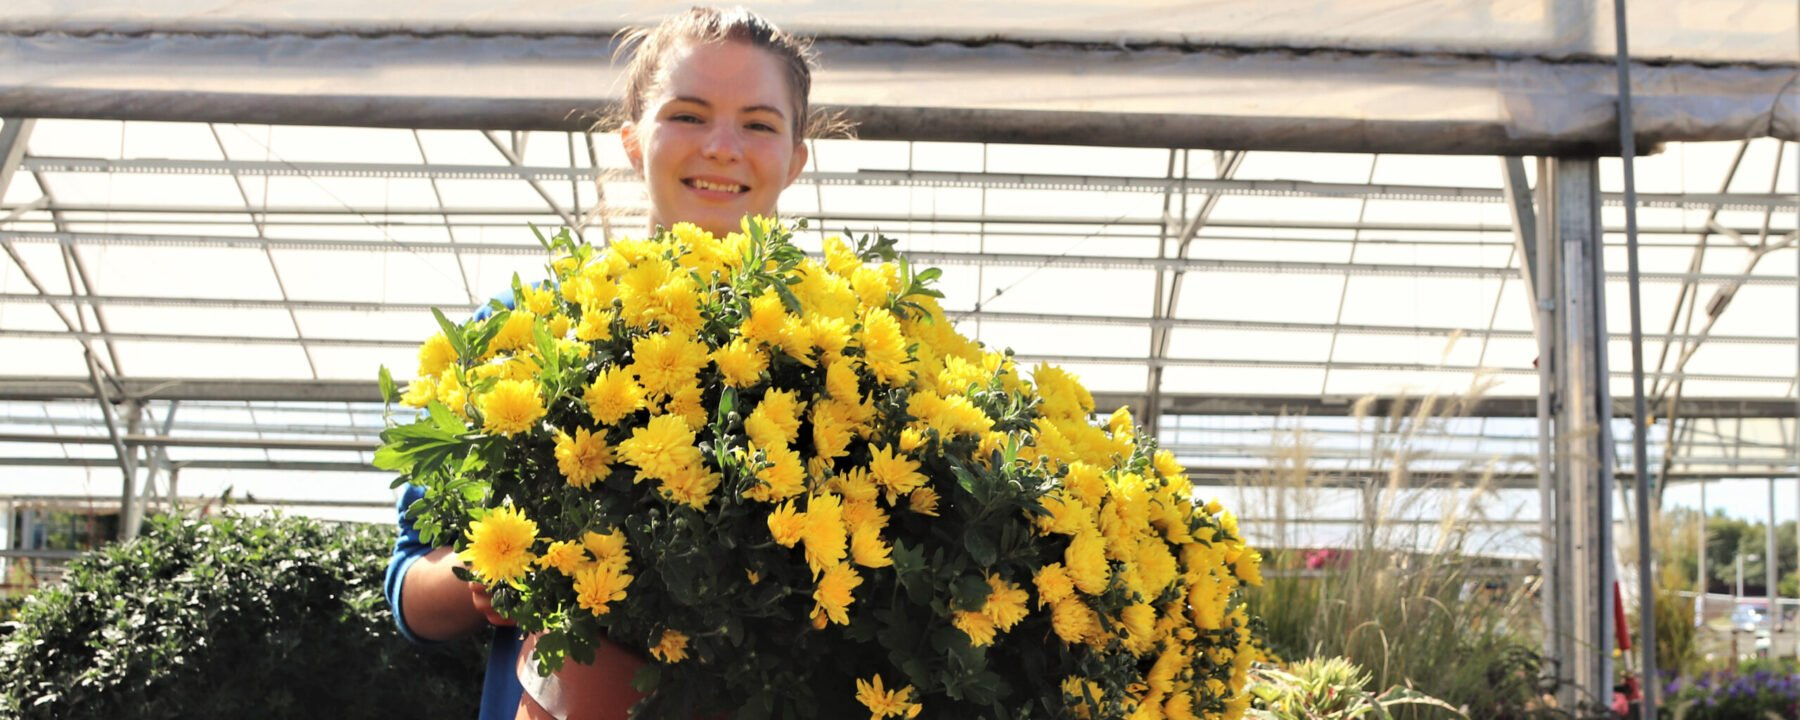 Mums are in bloom in Flowerland's greenhouse